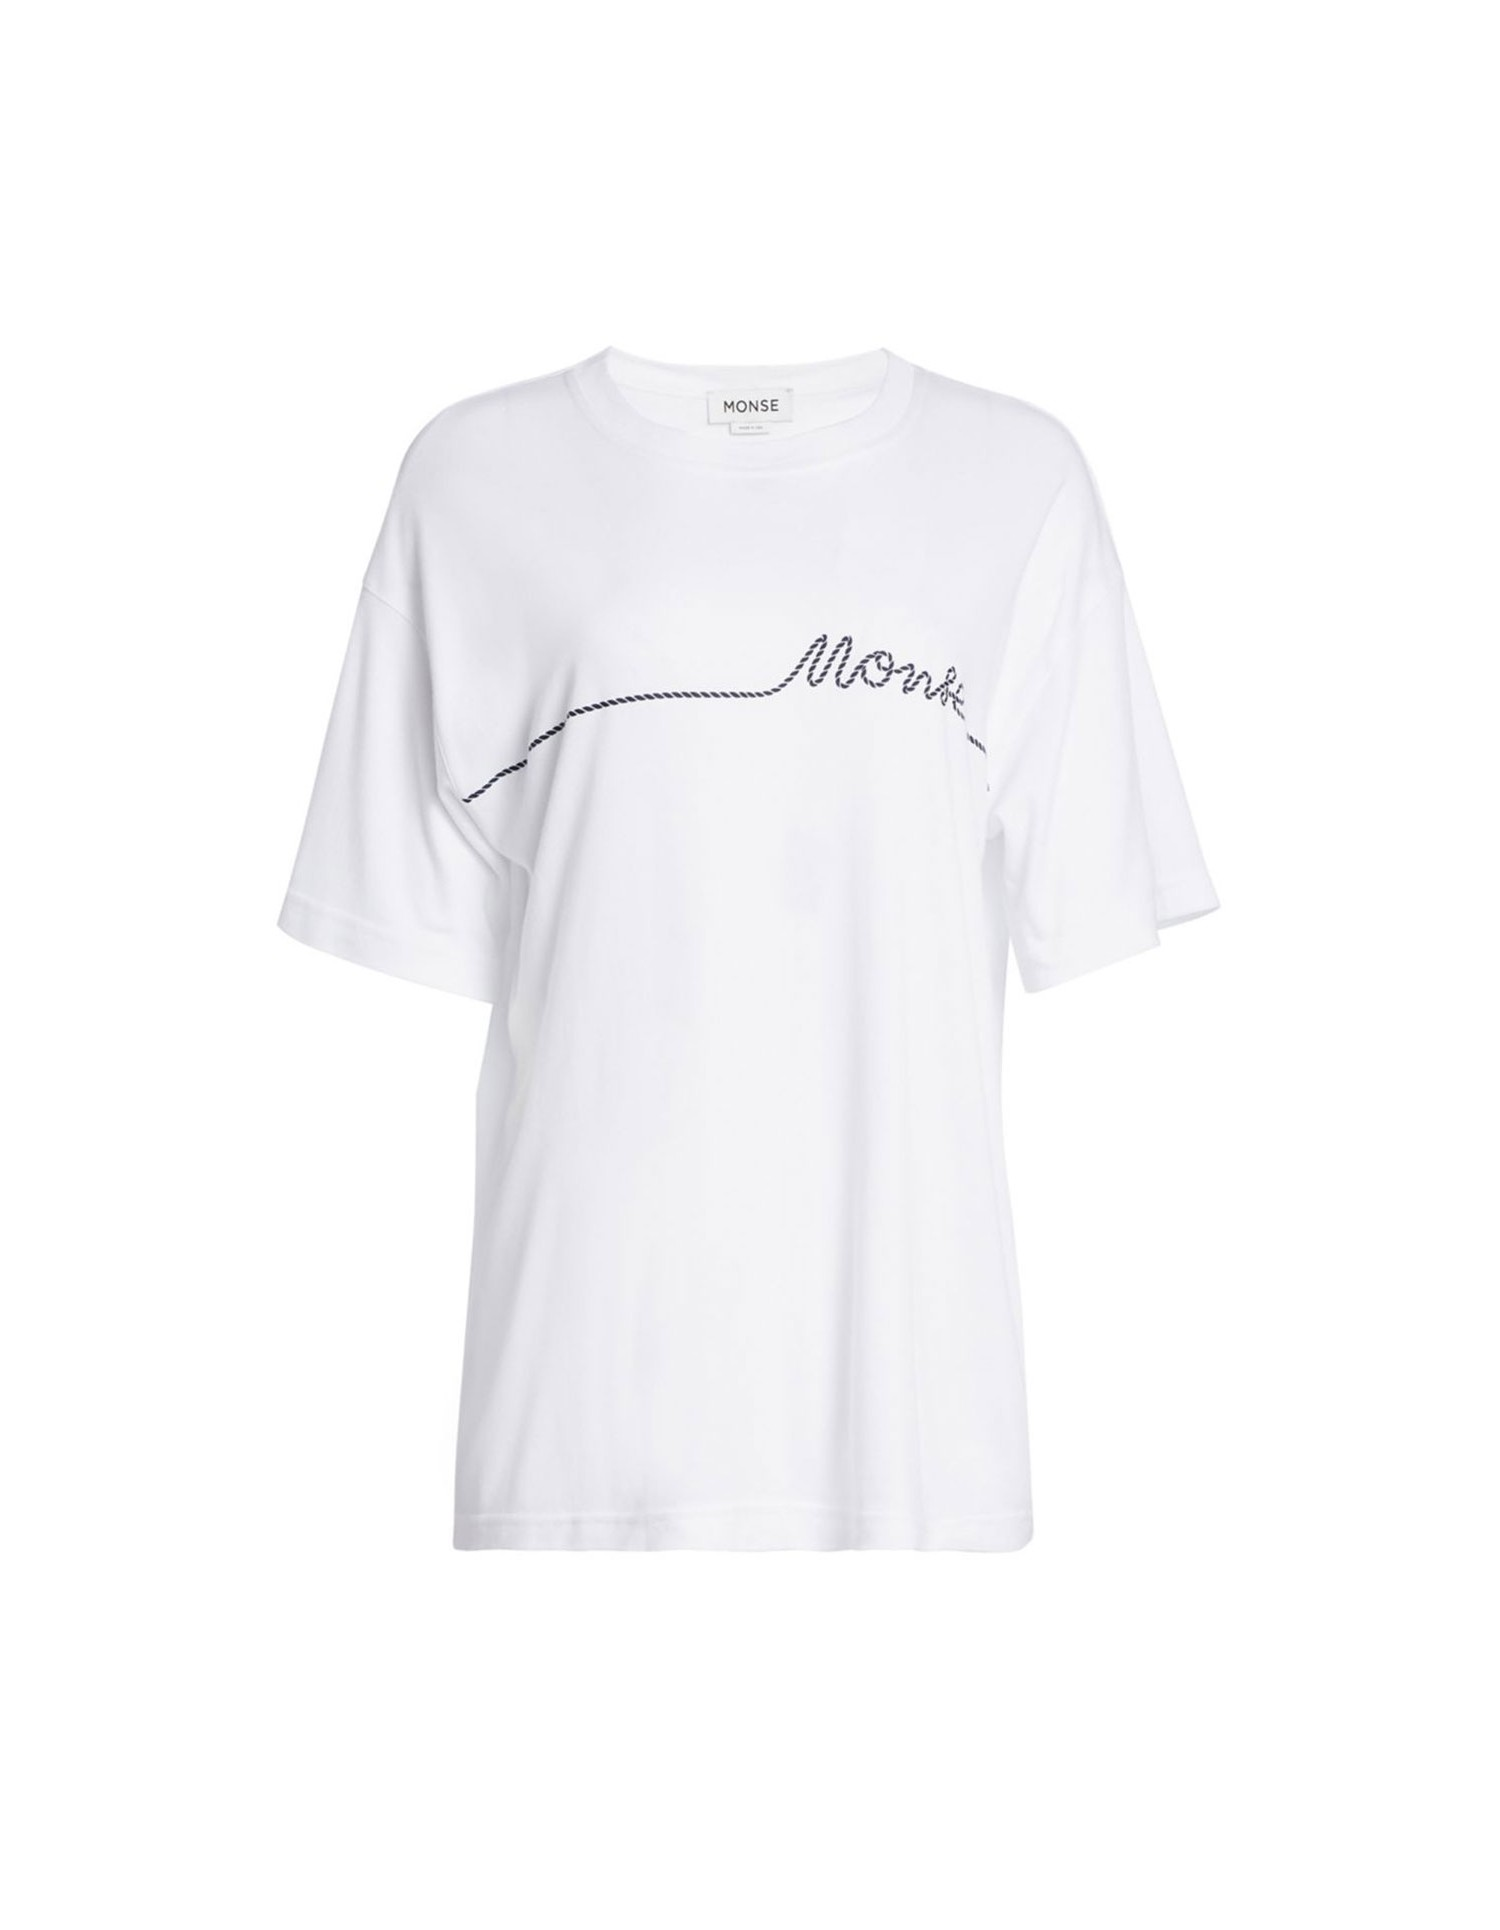 MONSE Small Rope Print Tee White